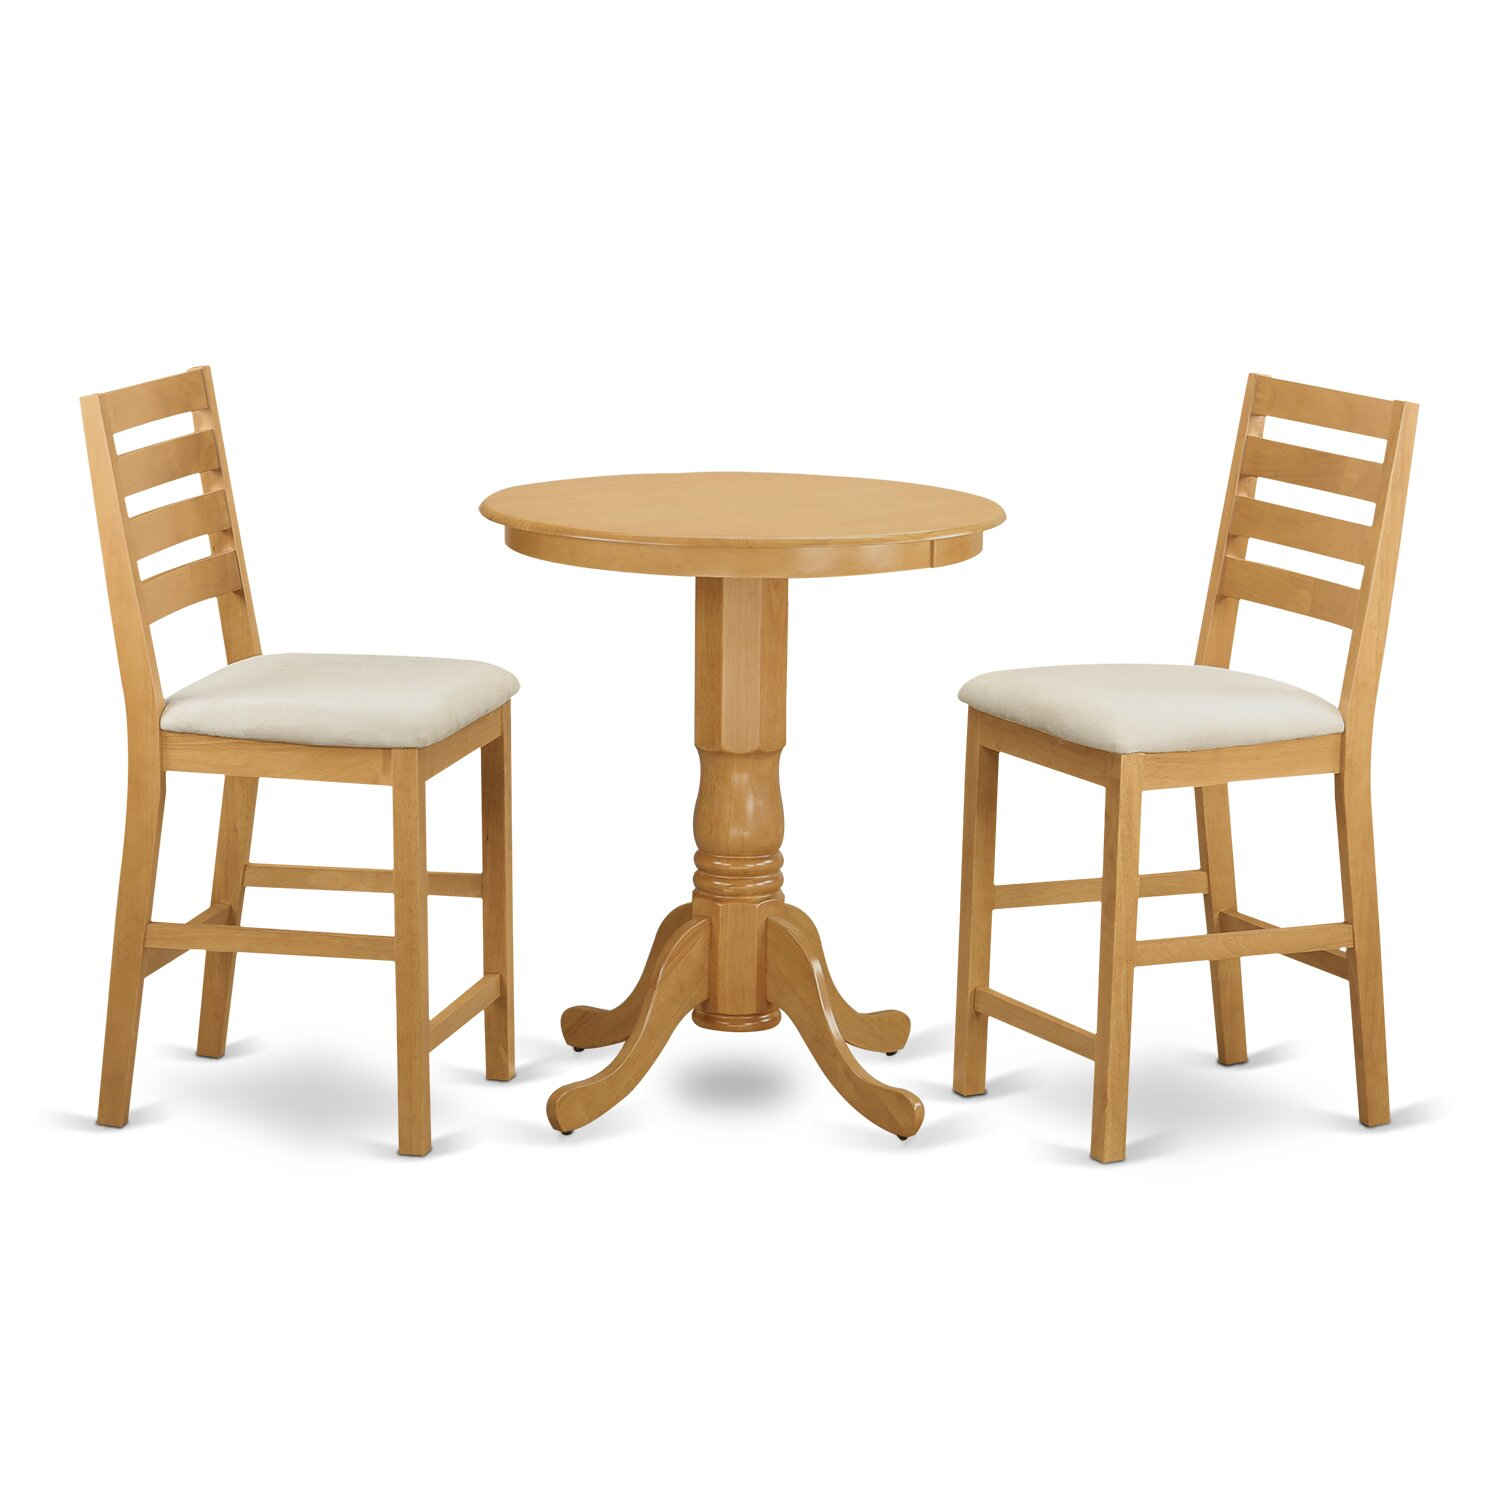 3 Pcs Modern Counter Height Dining Set Table And 2 Chairs: Wooden Importers 3 Piece Counter Height Pub Table Set